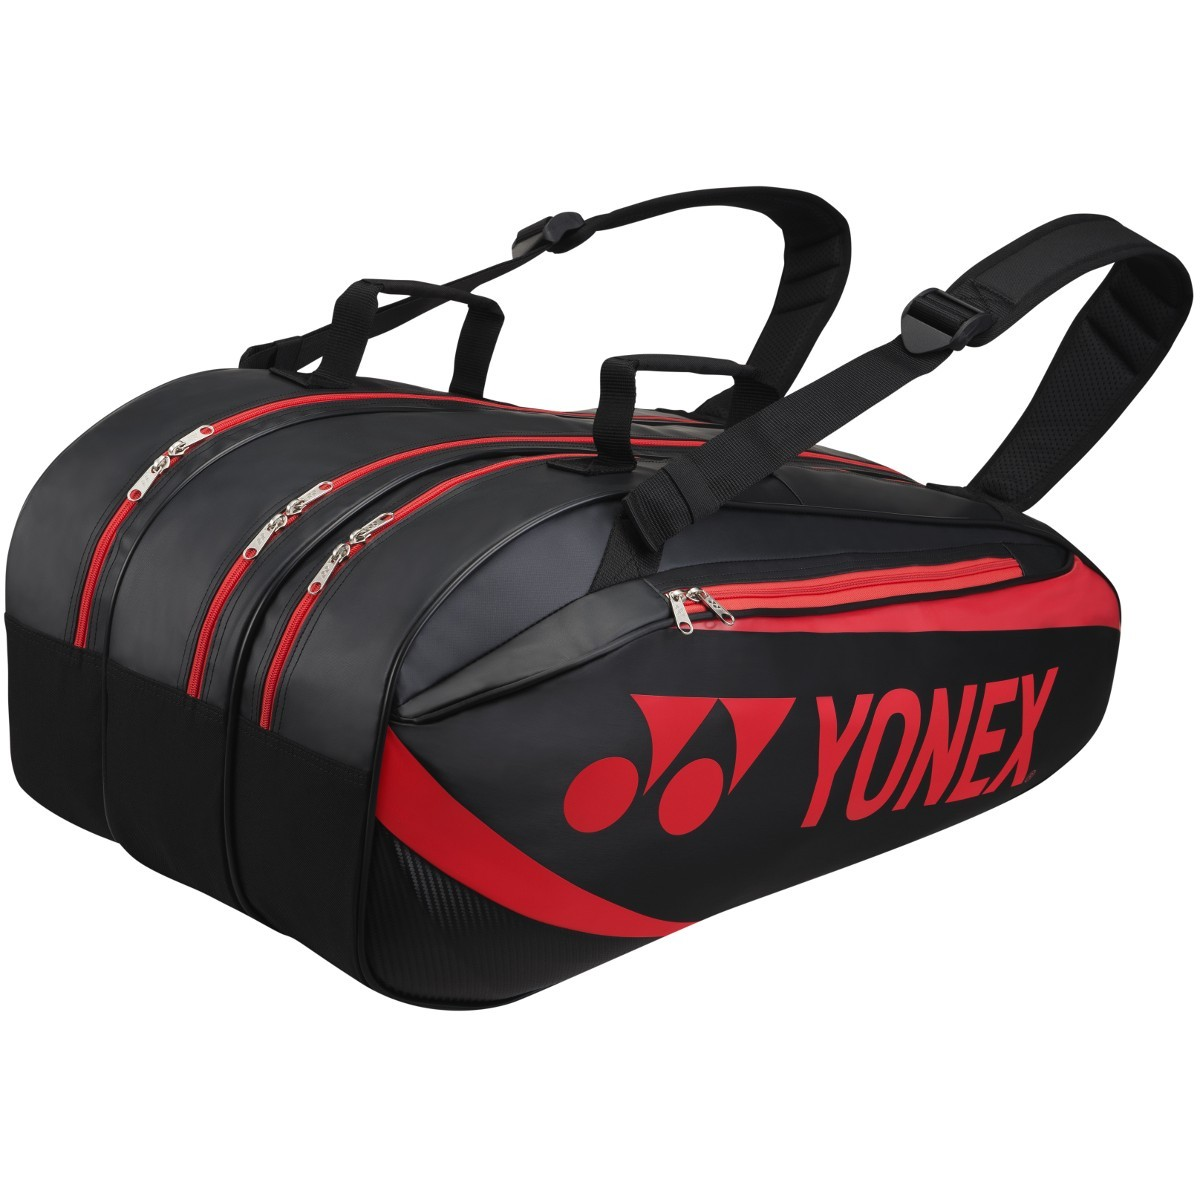 Torba tenisowa Yonex Tournament Active Bag 9 Black / Red